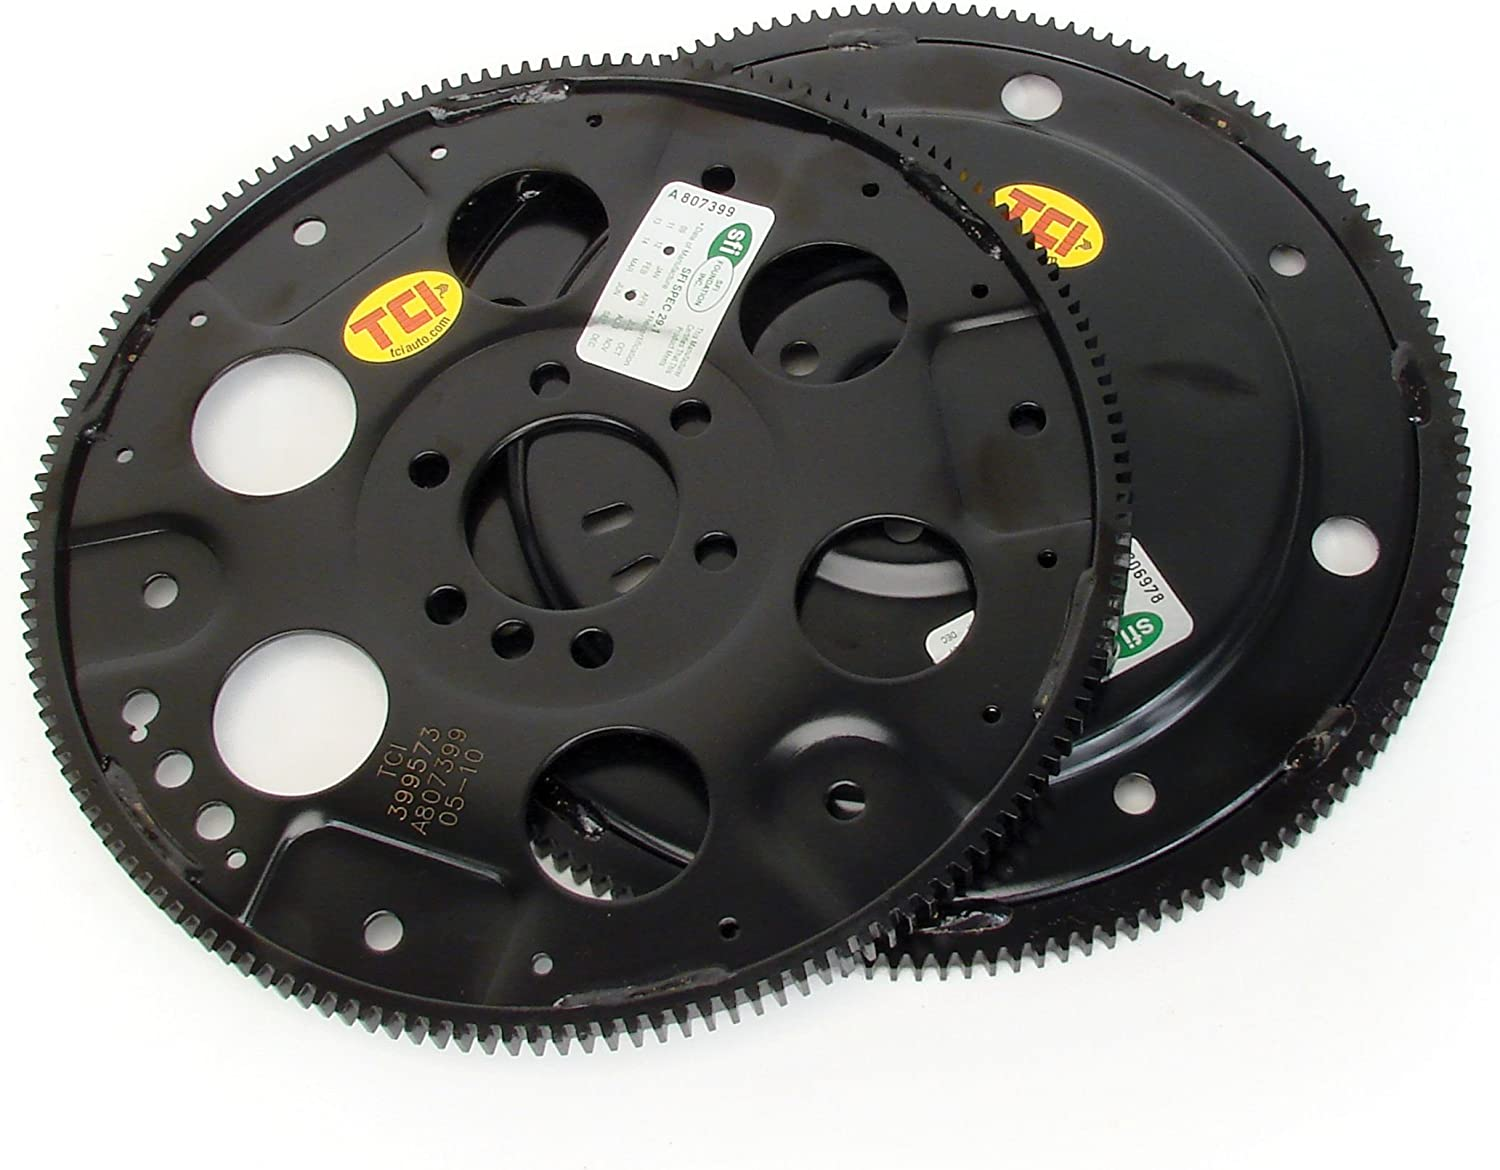 TCI Auto Trans Flexplate Steel 168 Tooth Ring Gear External Balance SFI Approved 399473